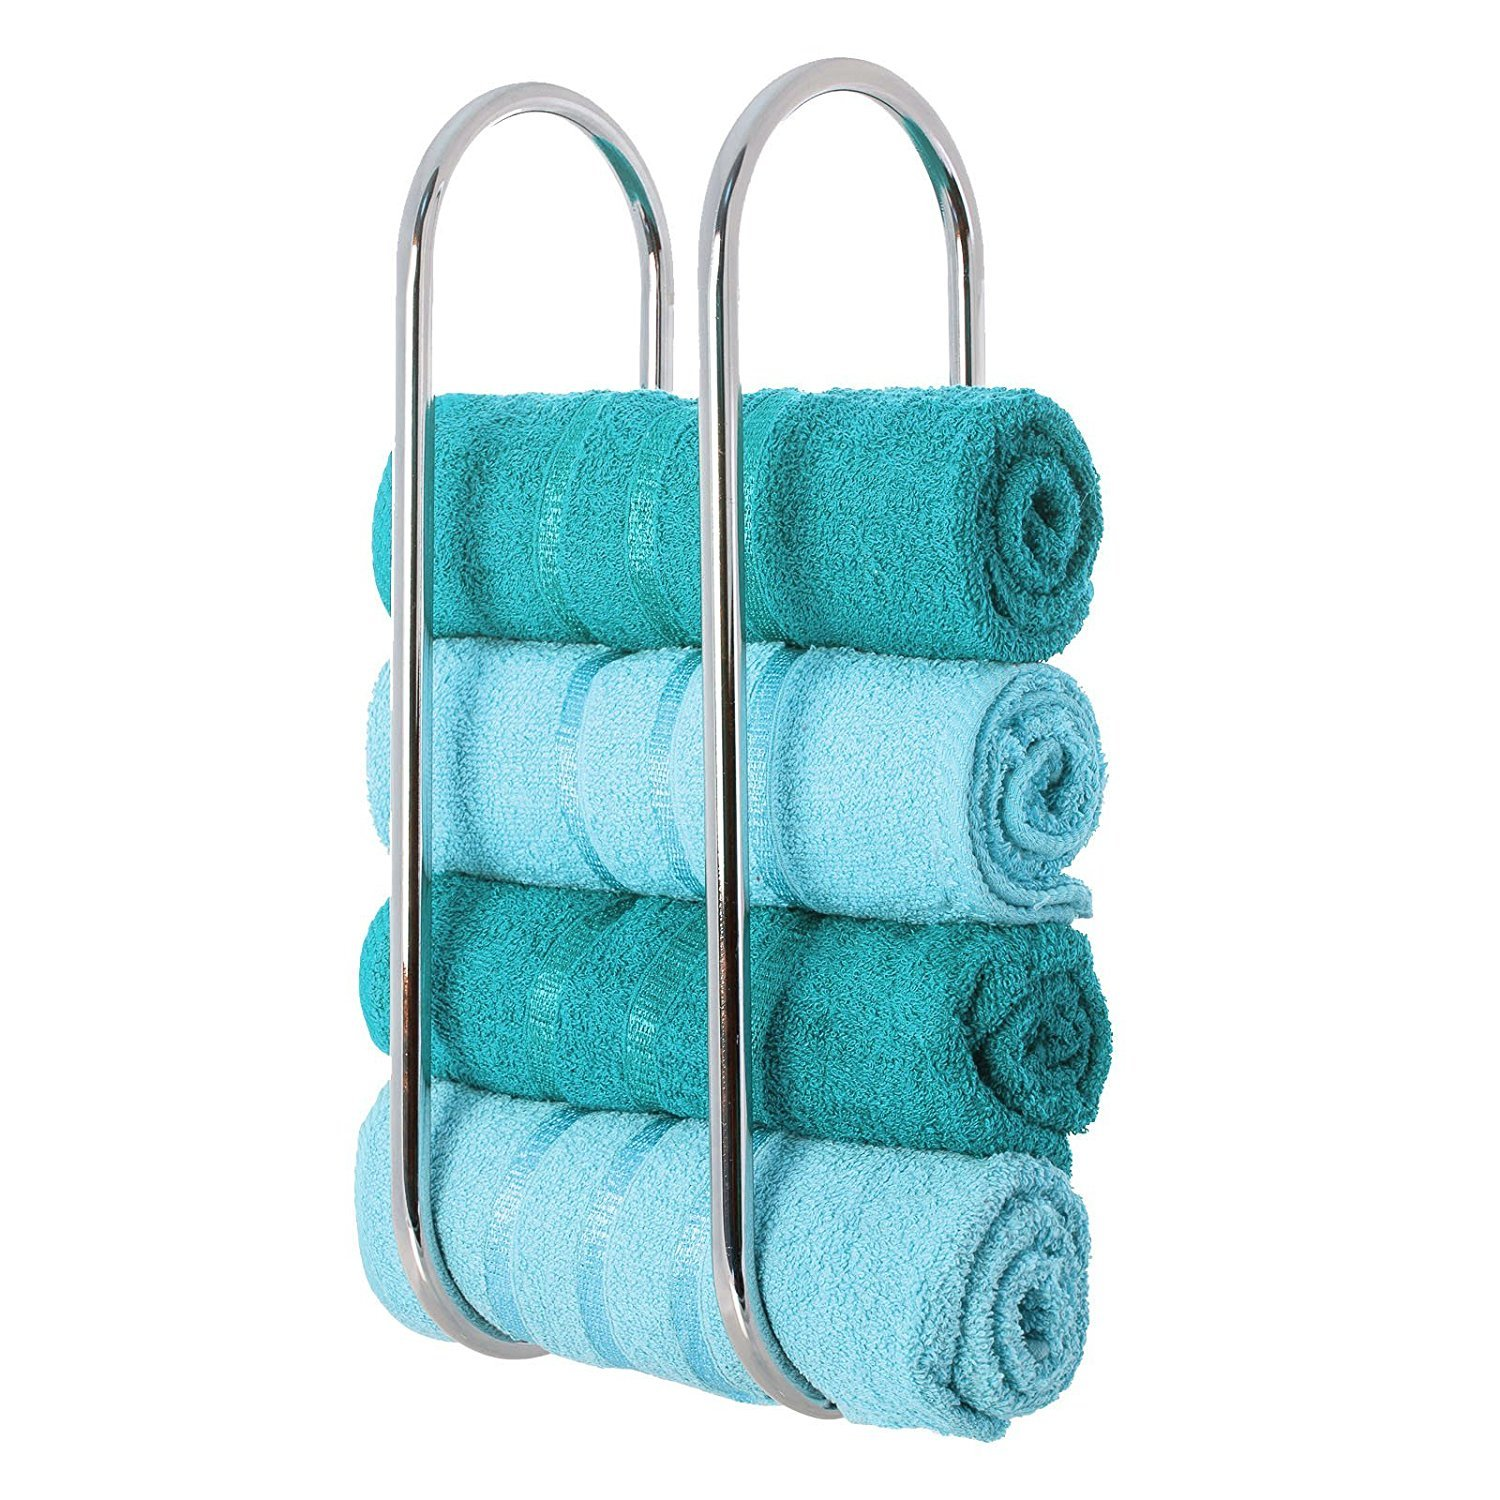 Wall Mounted Towel Holder: Amazon.co.uk